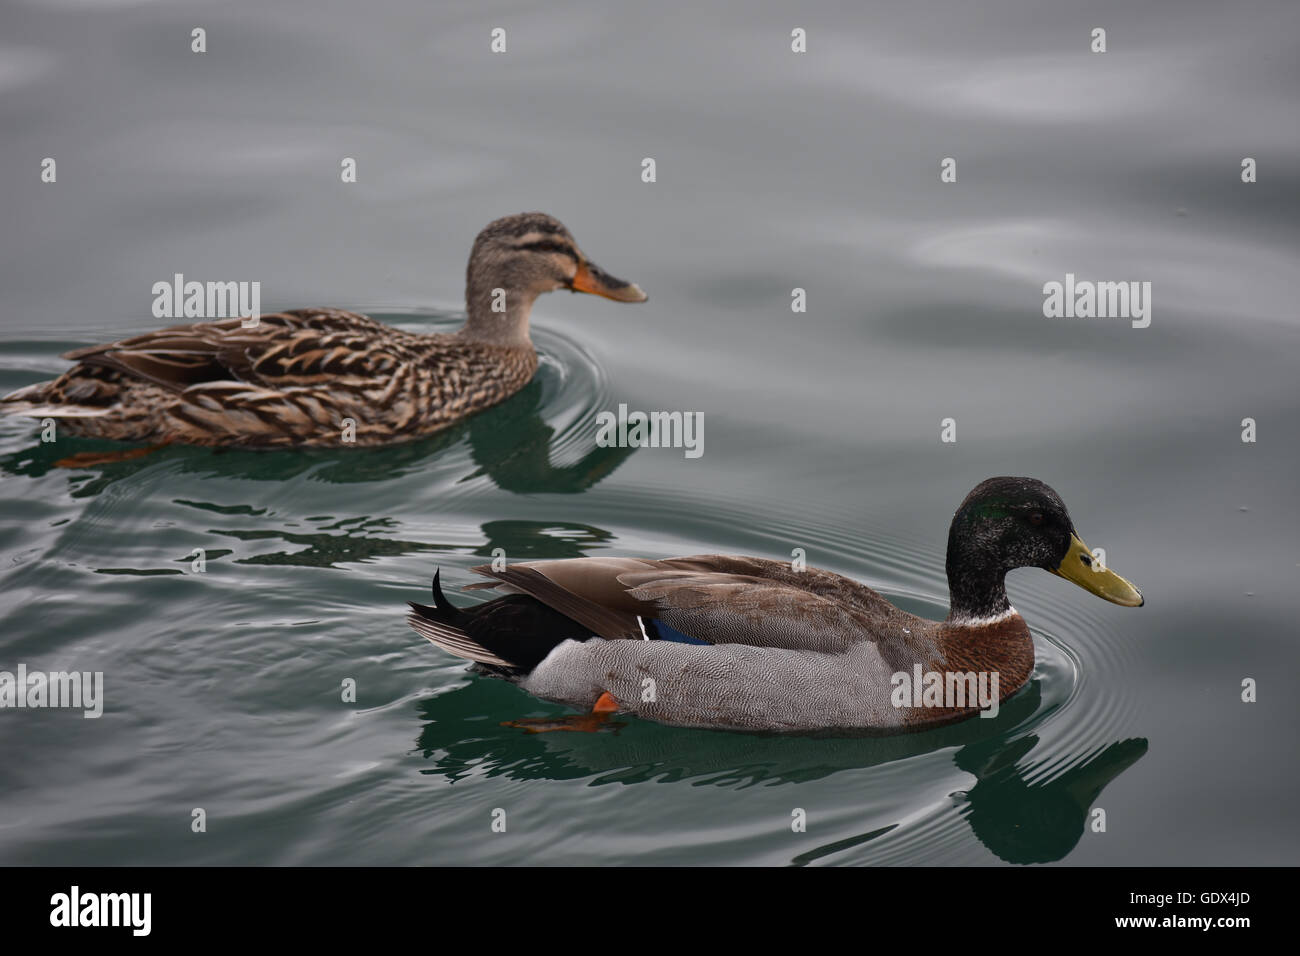 Female and male ducks on calm water - Stock Image